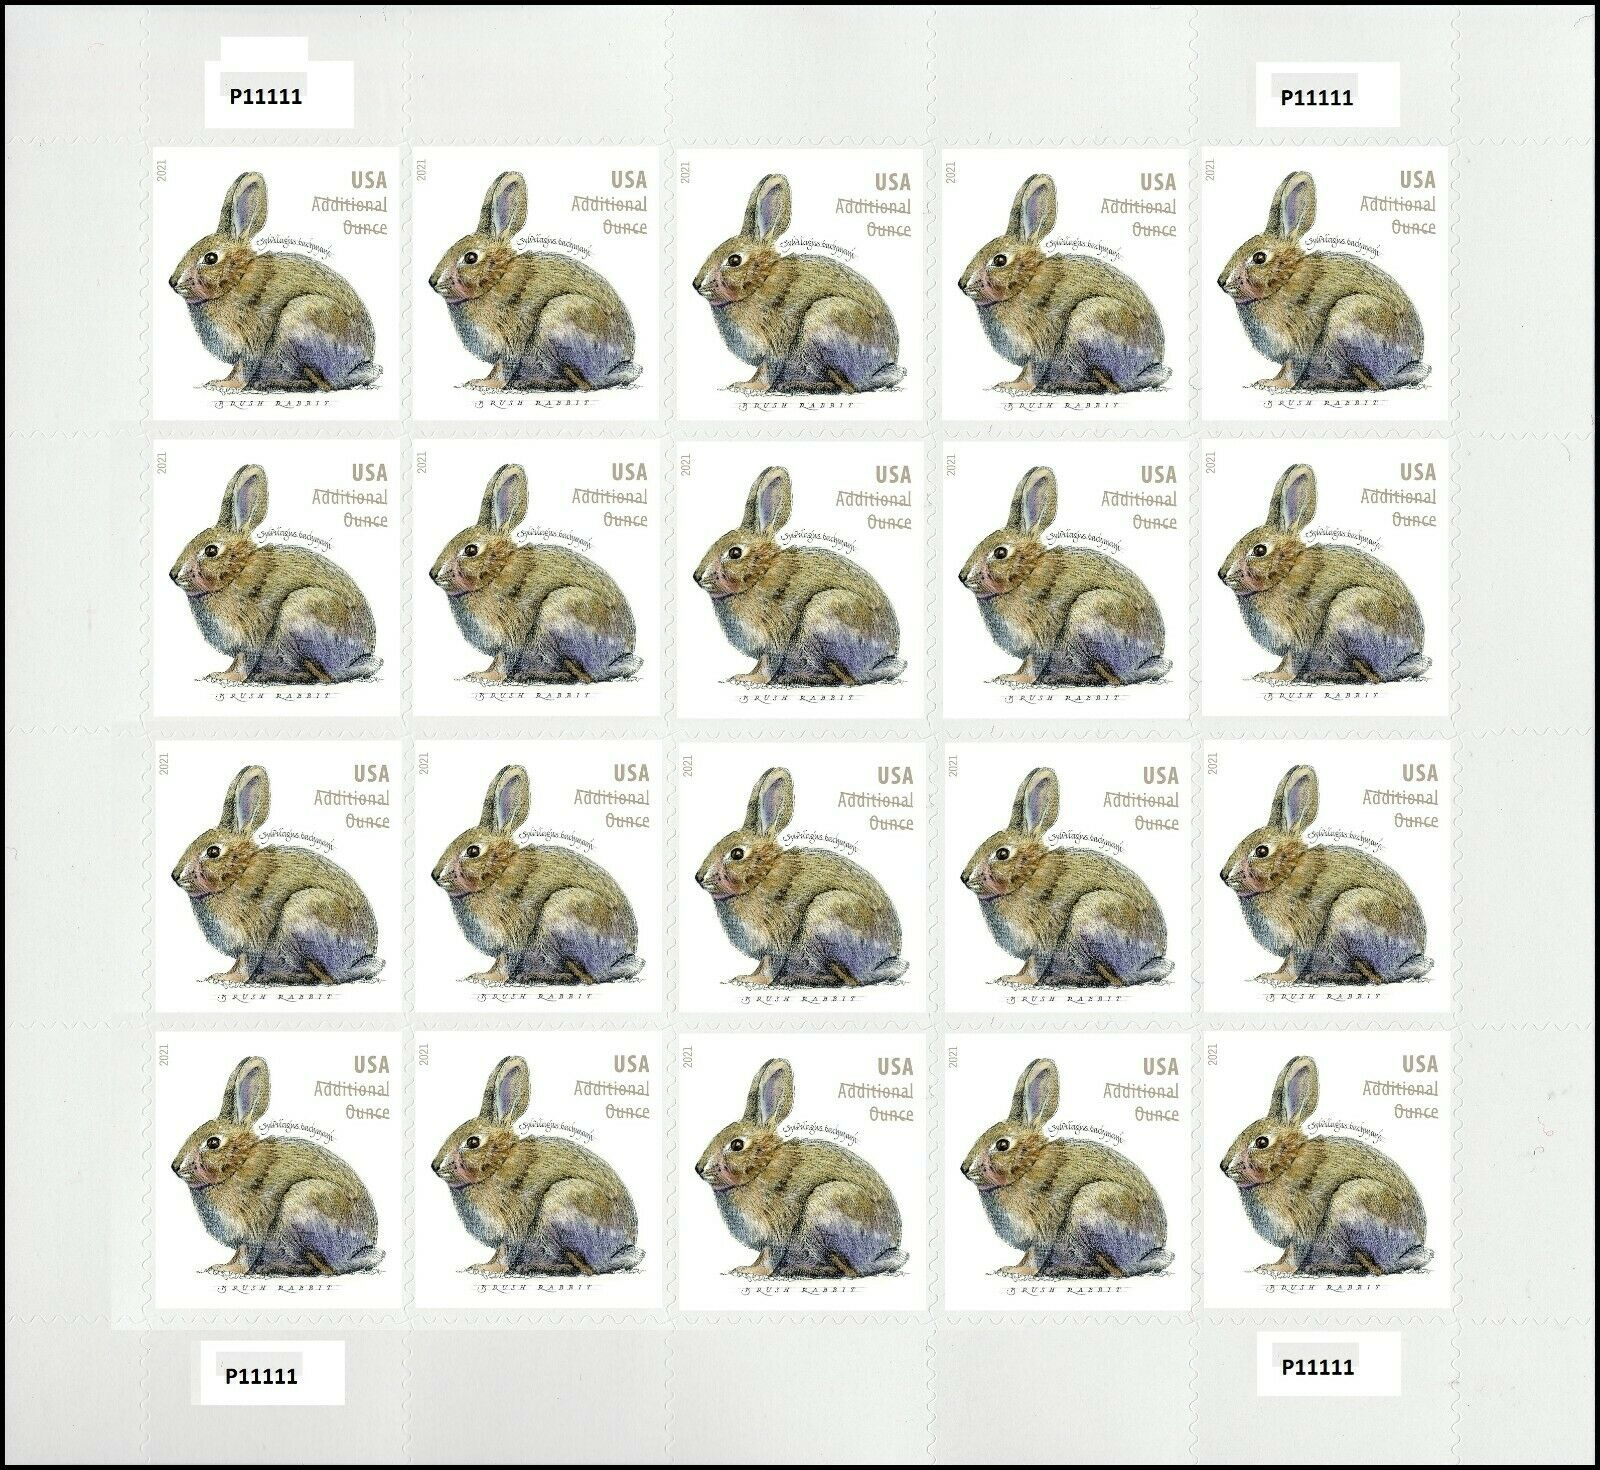 United States: Brush Rabbit, 24 January 2021 (pane of 20)